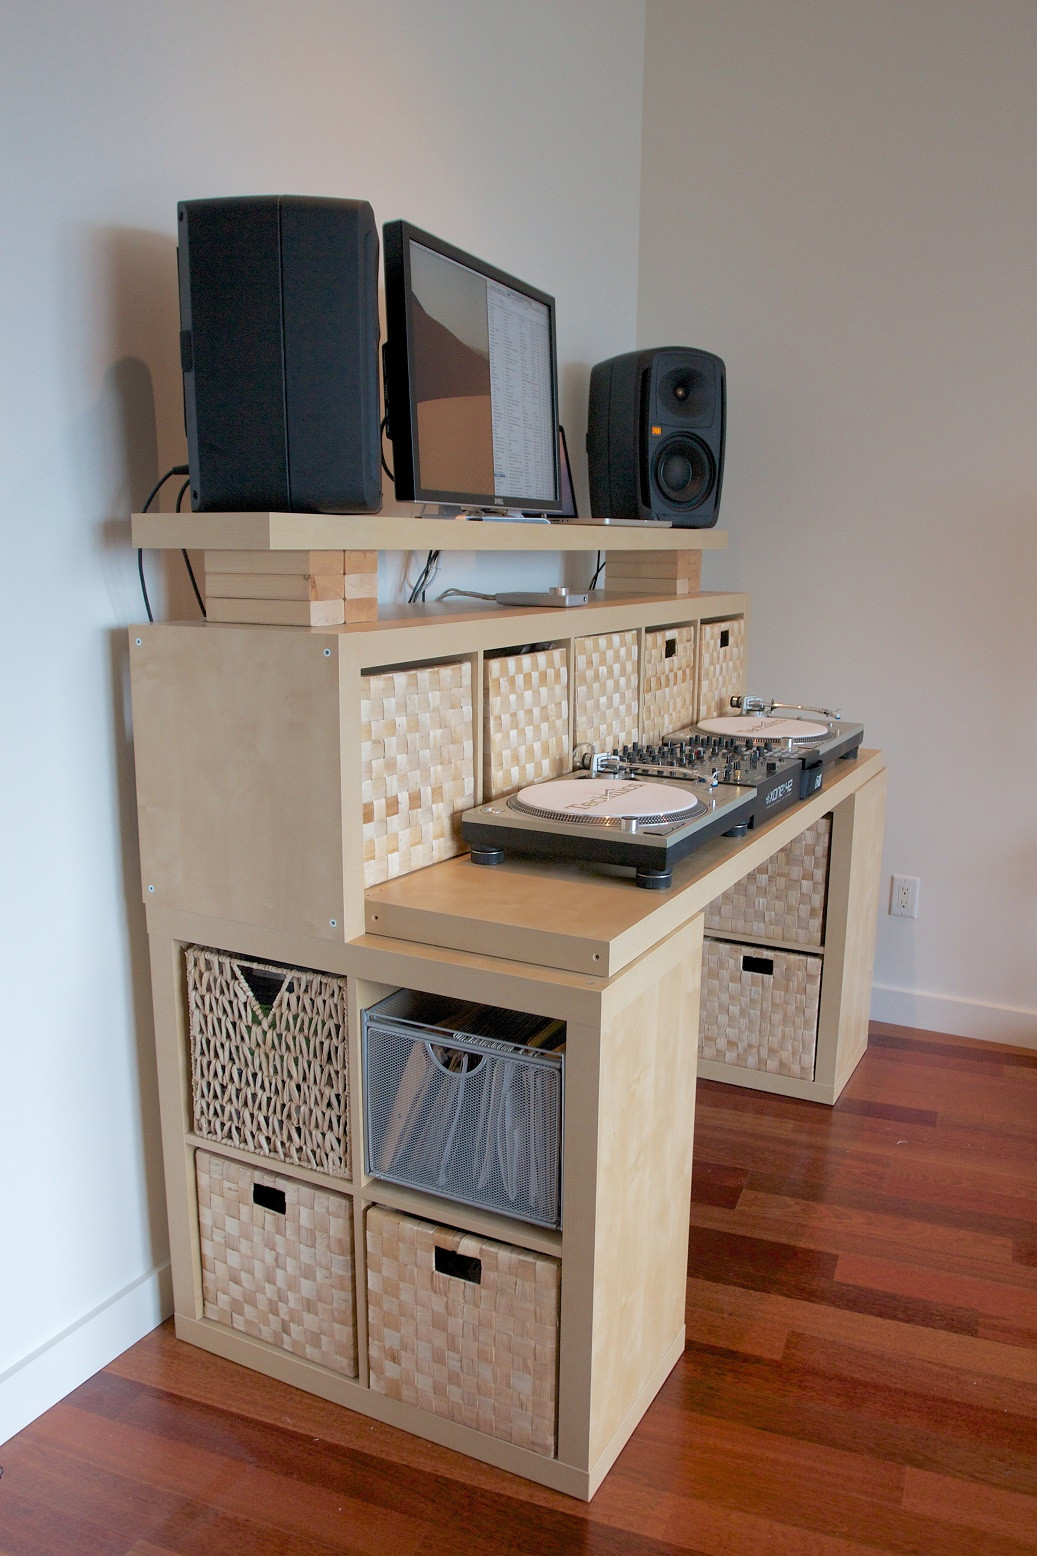 Best ideas about Standing Desks DIY . Save or Pin 21 DIY Standing or Stand Up Desk Ideas Now.